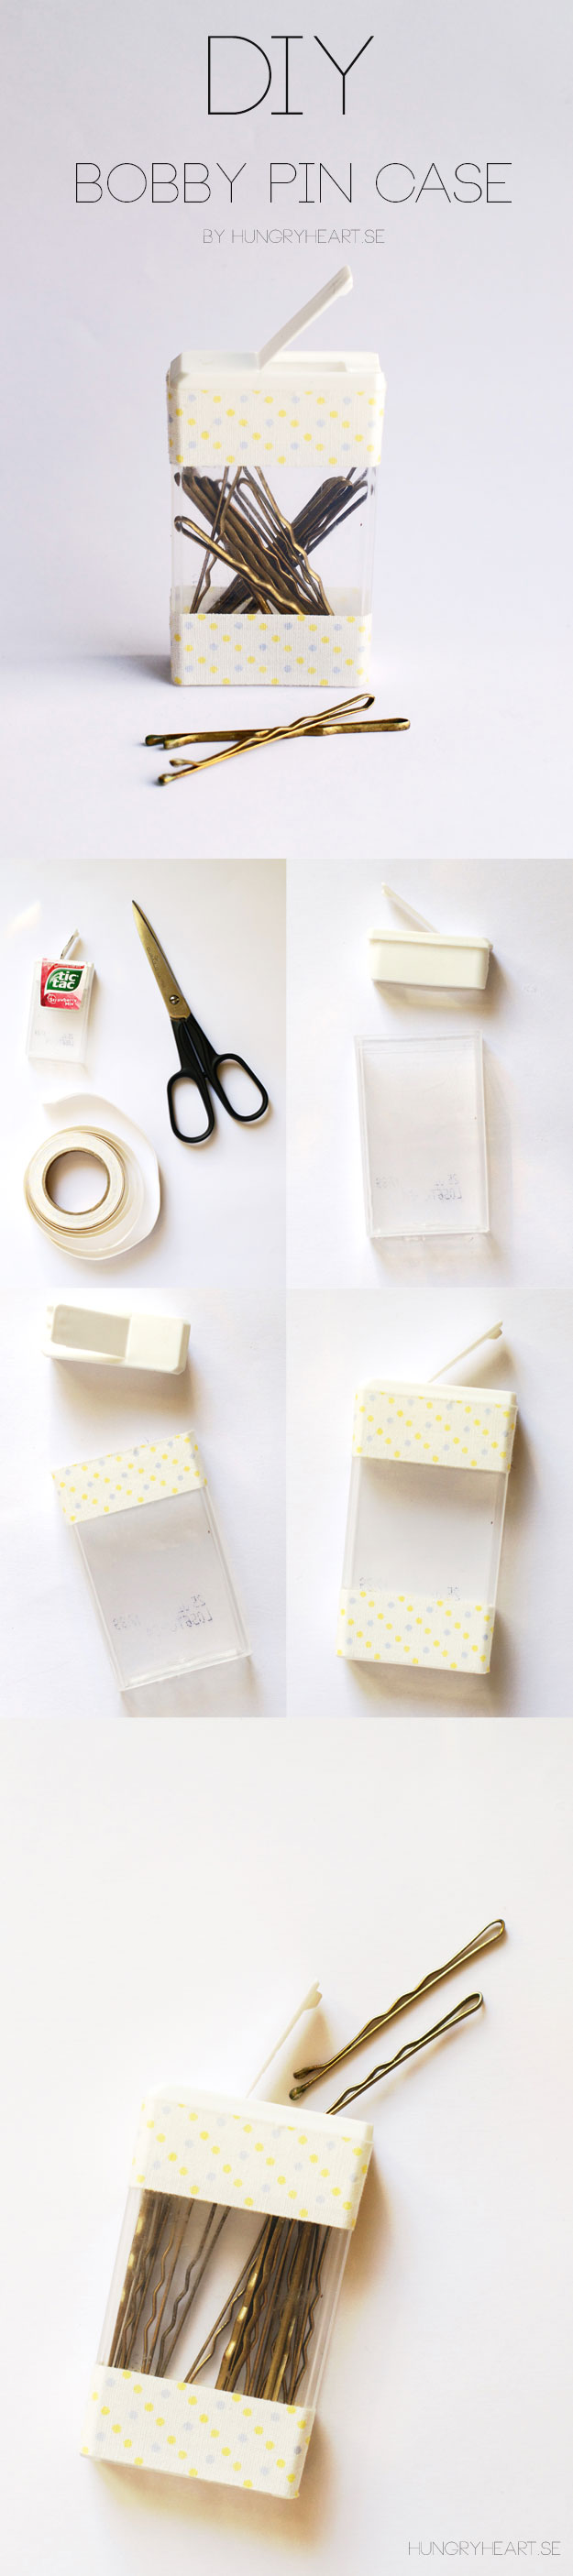 DIY Bobby Pin Case Tutorial | HungryHeart.se